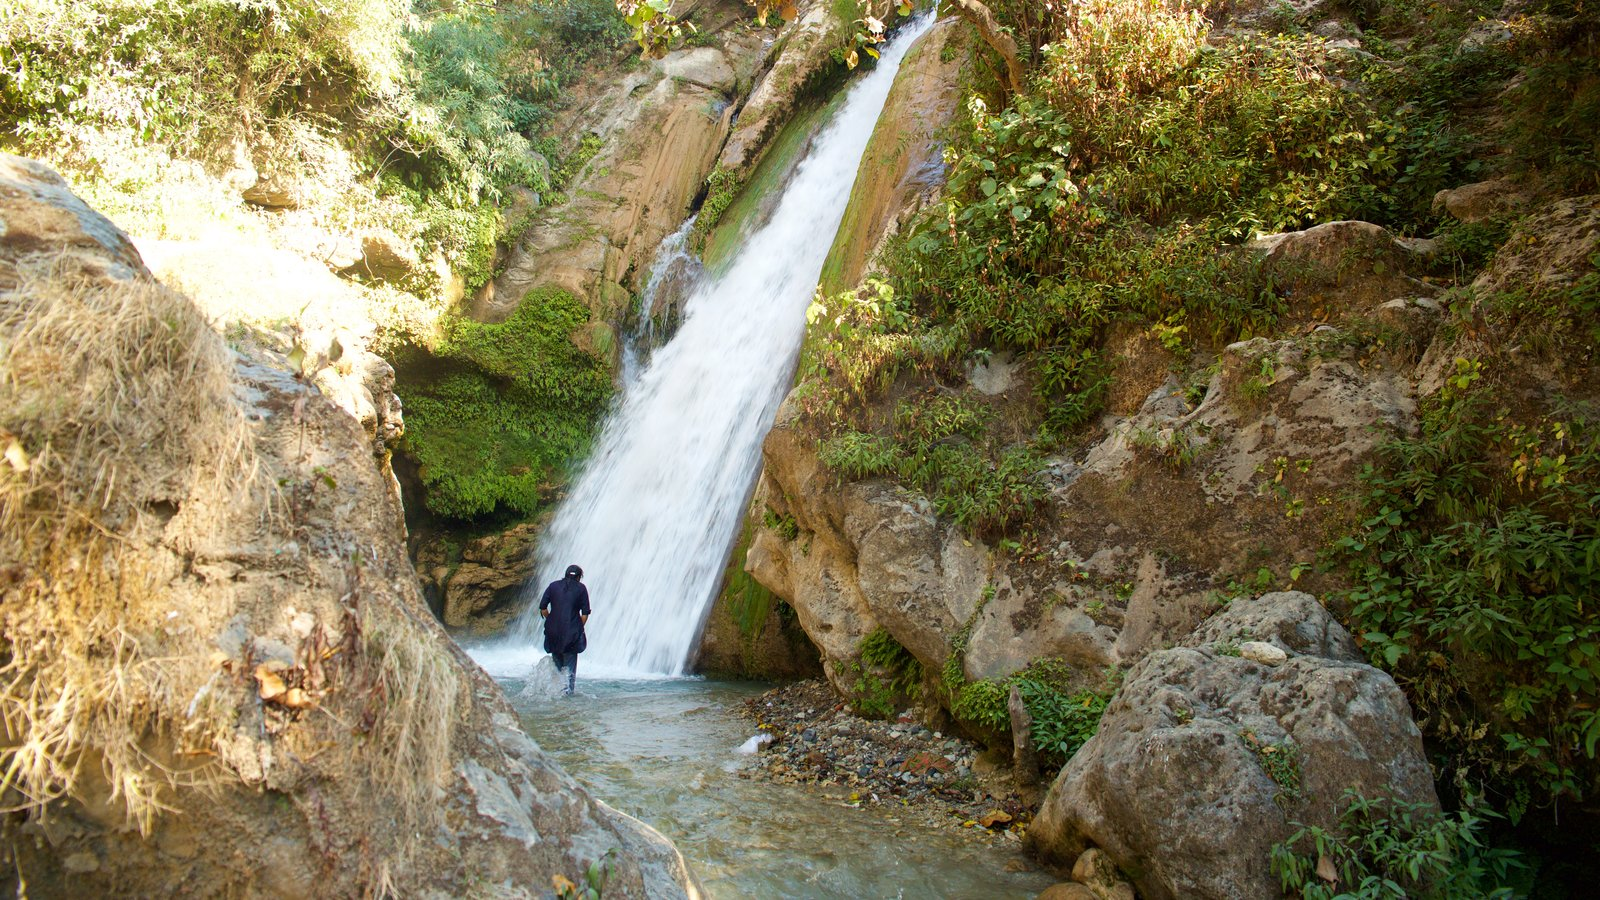 Bhata Falls featuring tranquil scenes and a cascade